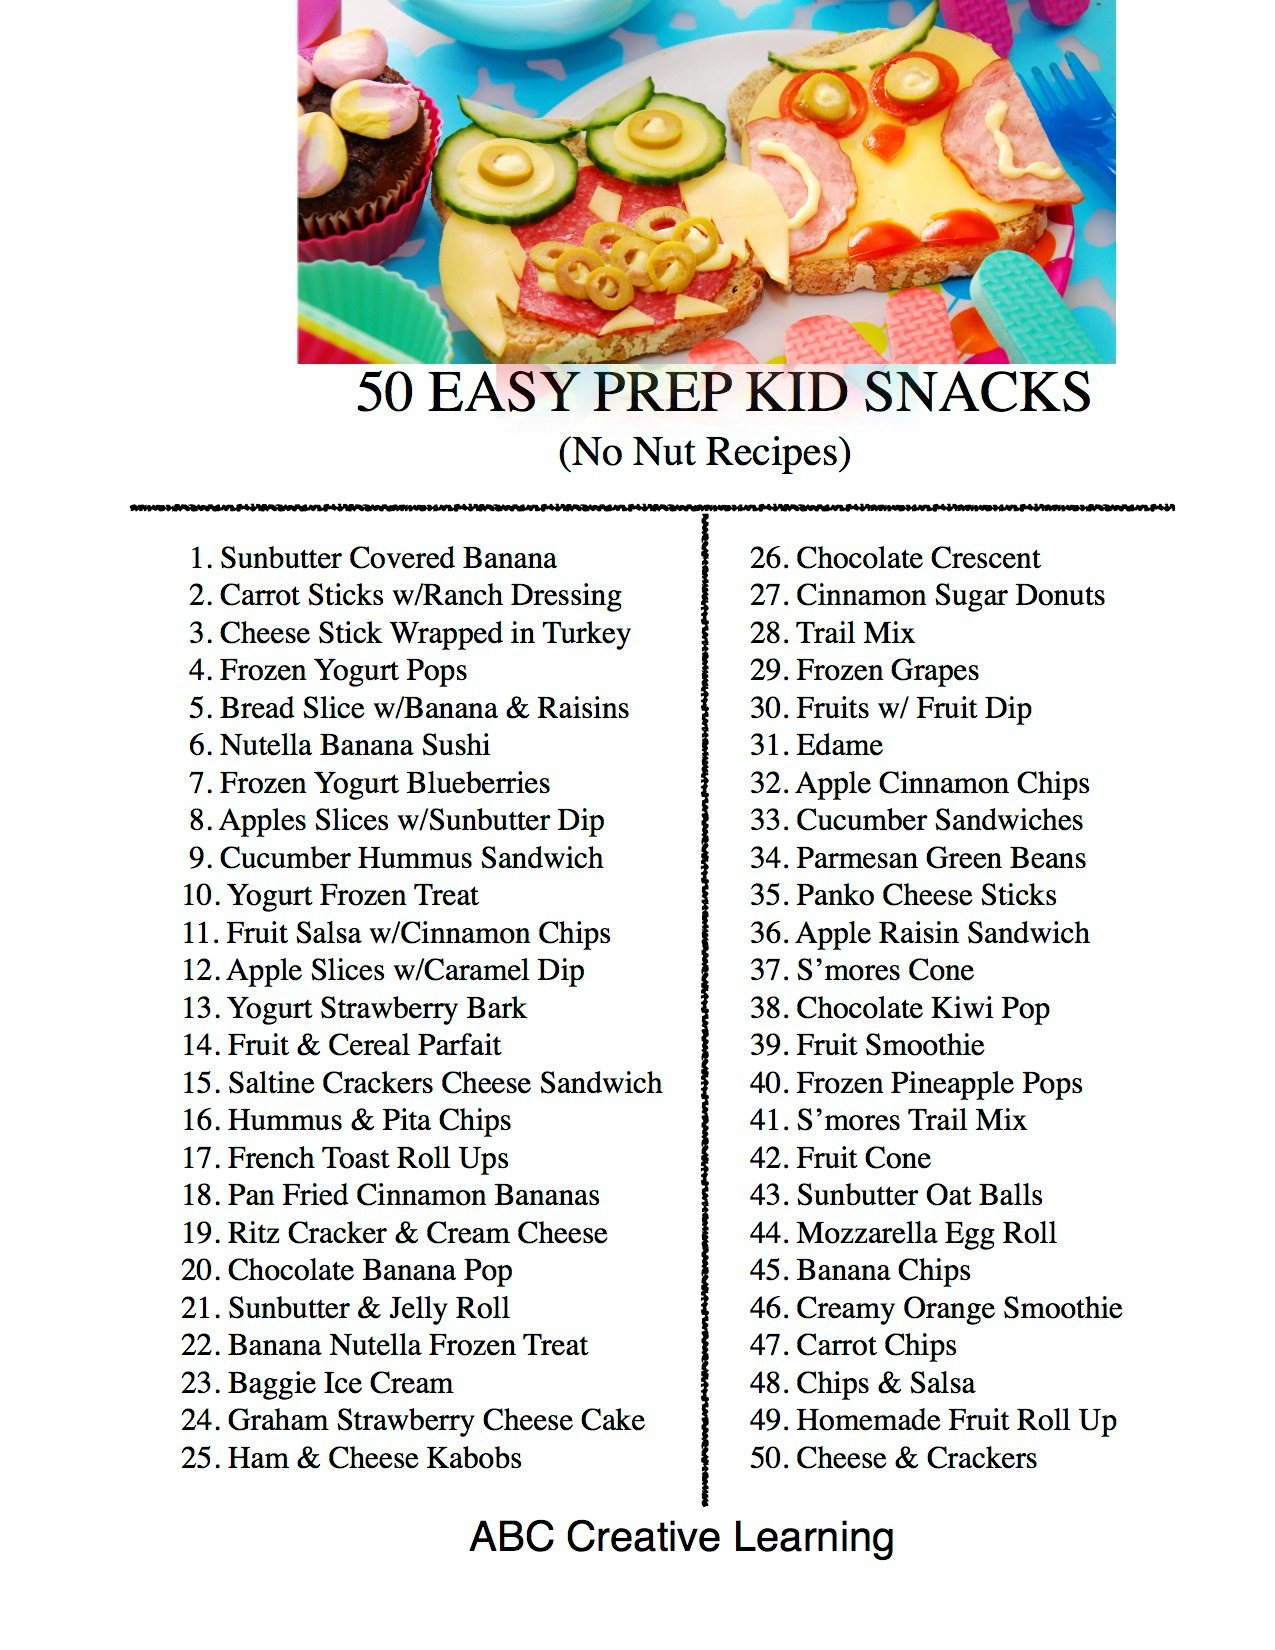 50 Easy Prep Kid Snacks